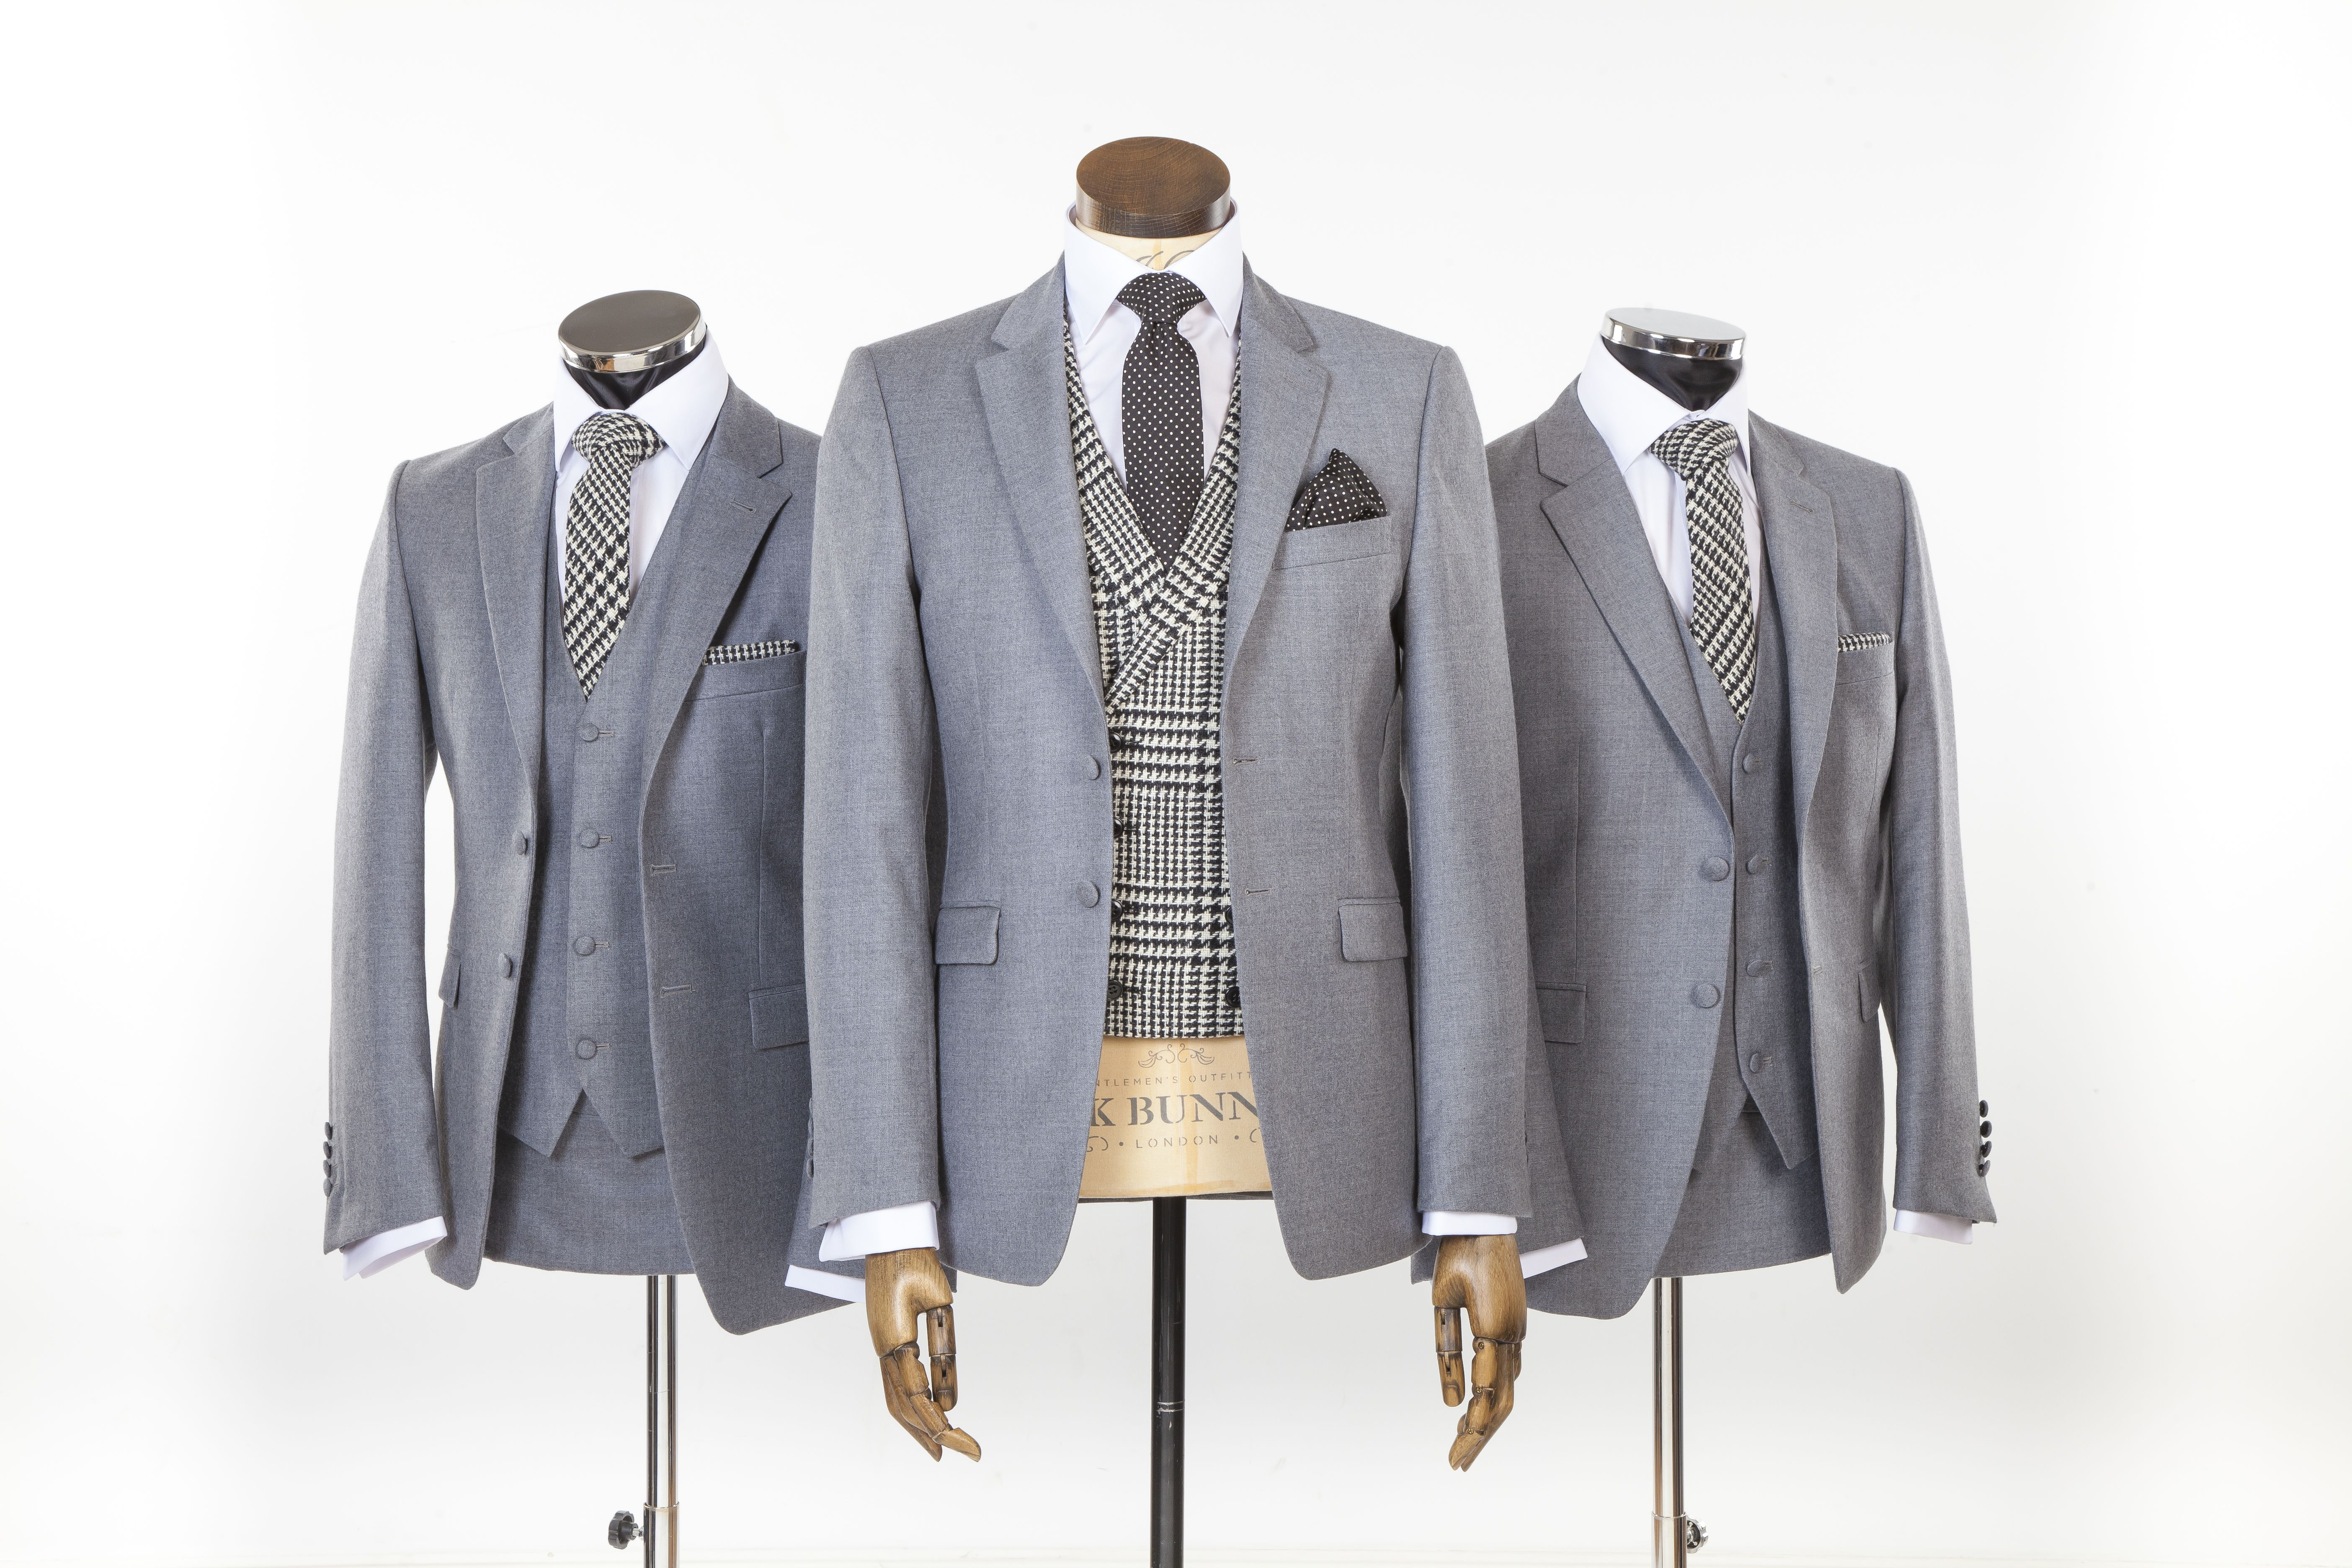 The Top Wedding Suit Trend For 2019 Wedding Suit Hire Suits